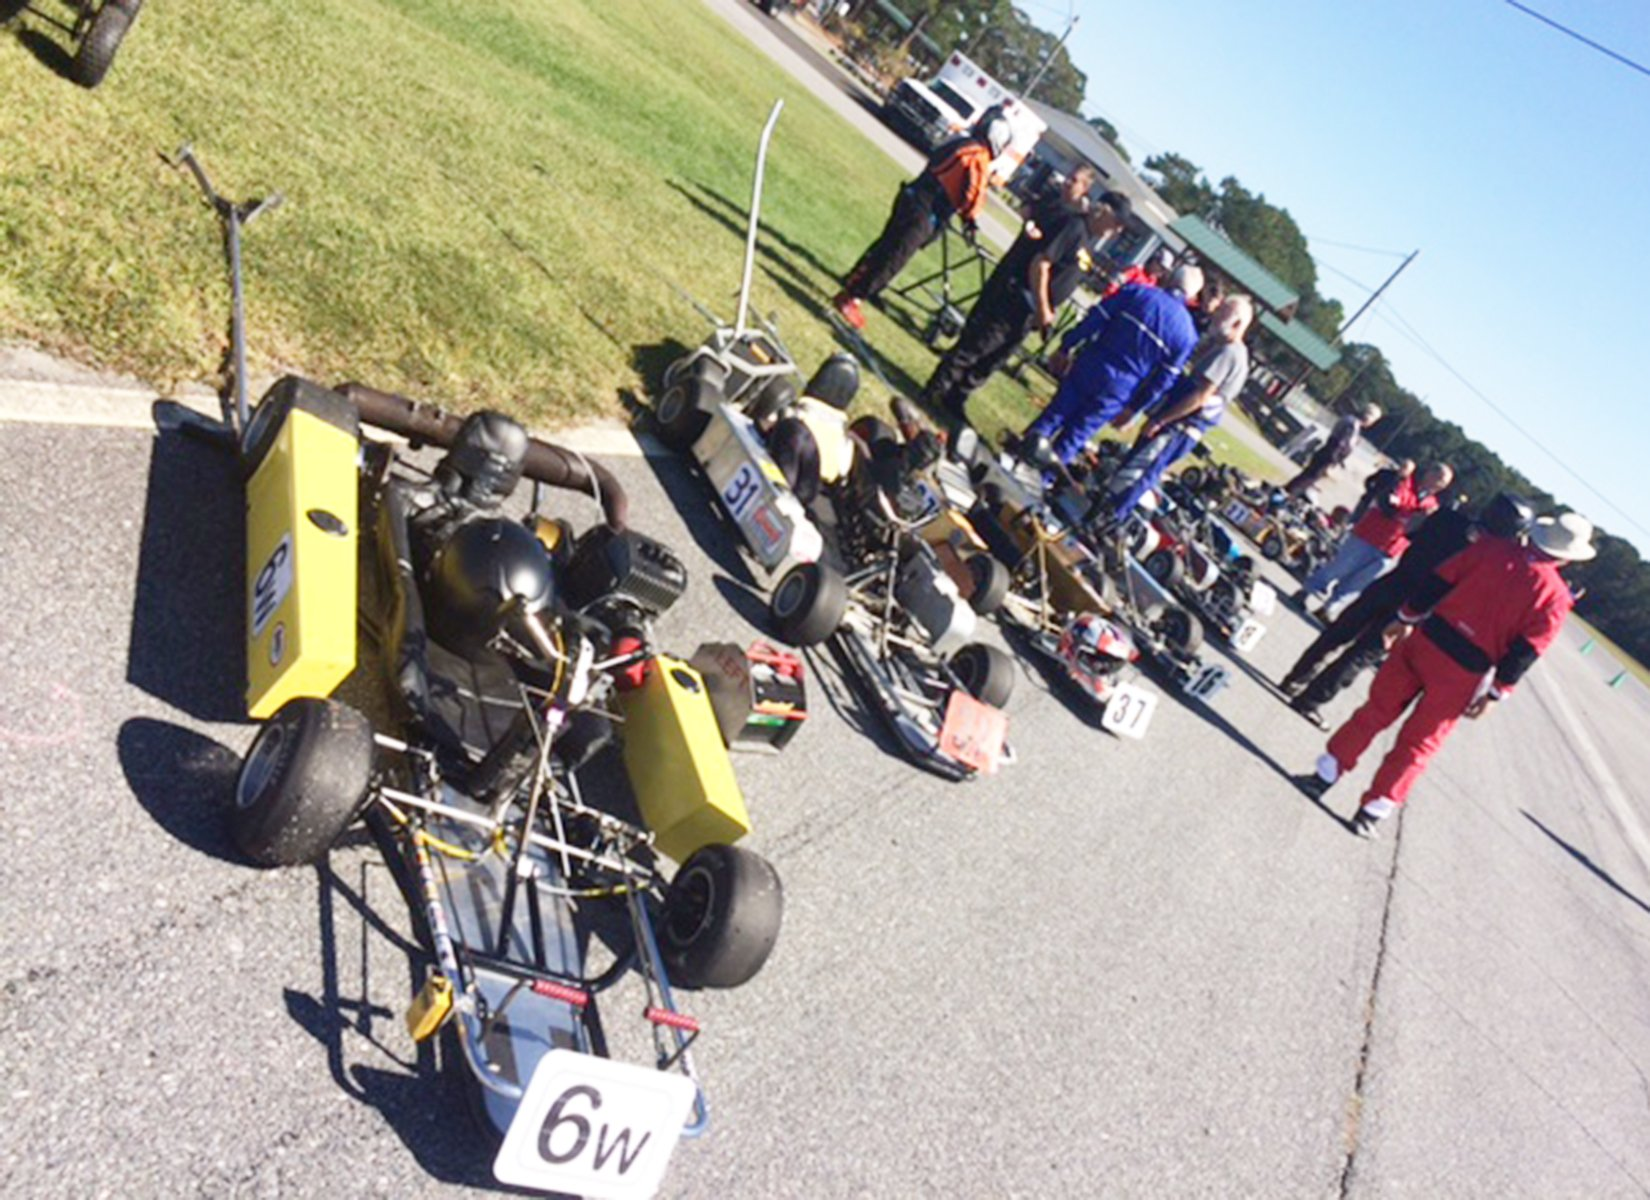 Arthur McKenny's kart (#6w) at the head of the starting grid